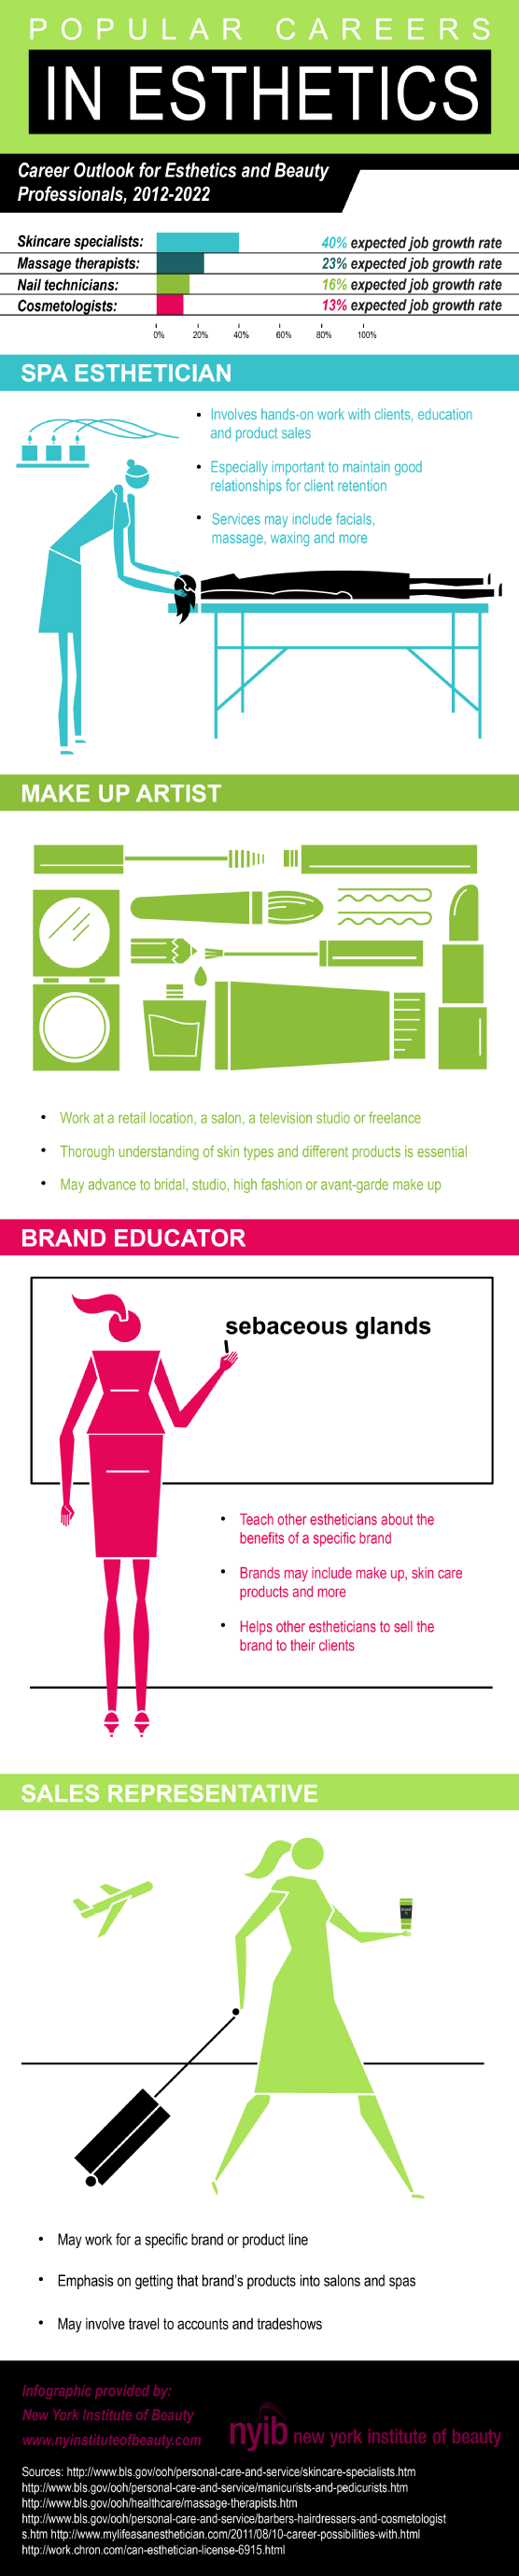 Popular Careers in Esthetics [Infographic]